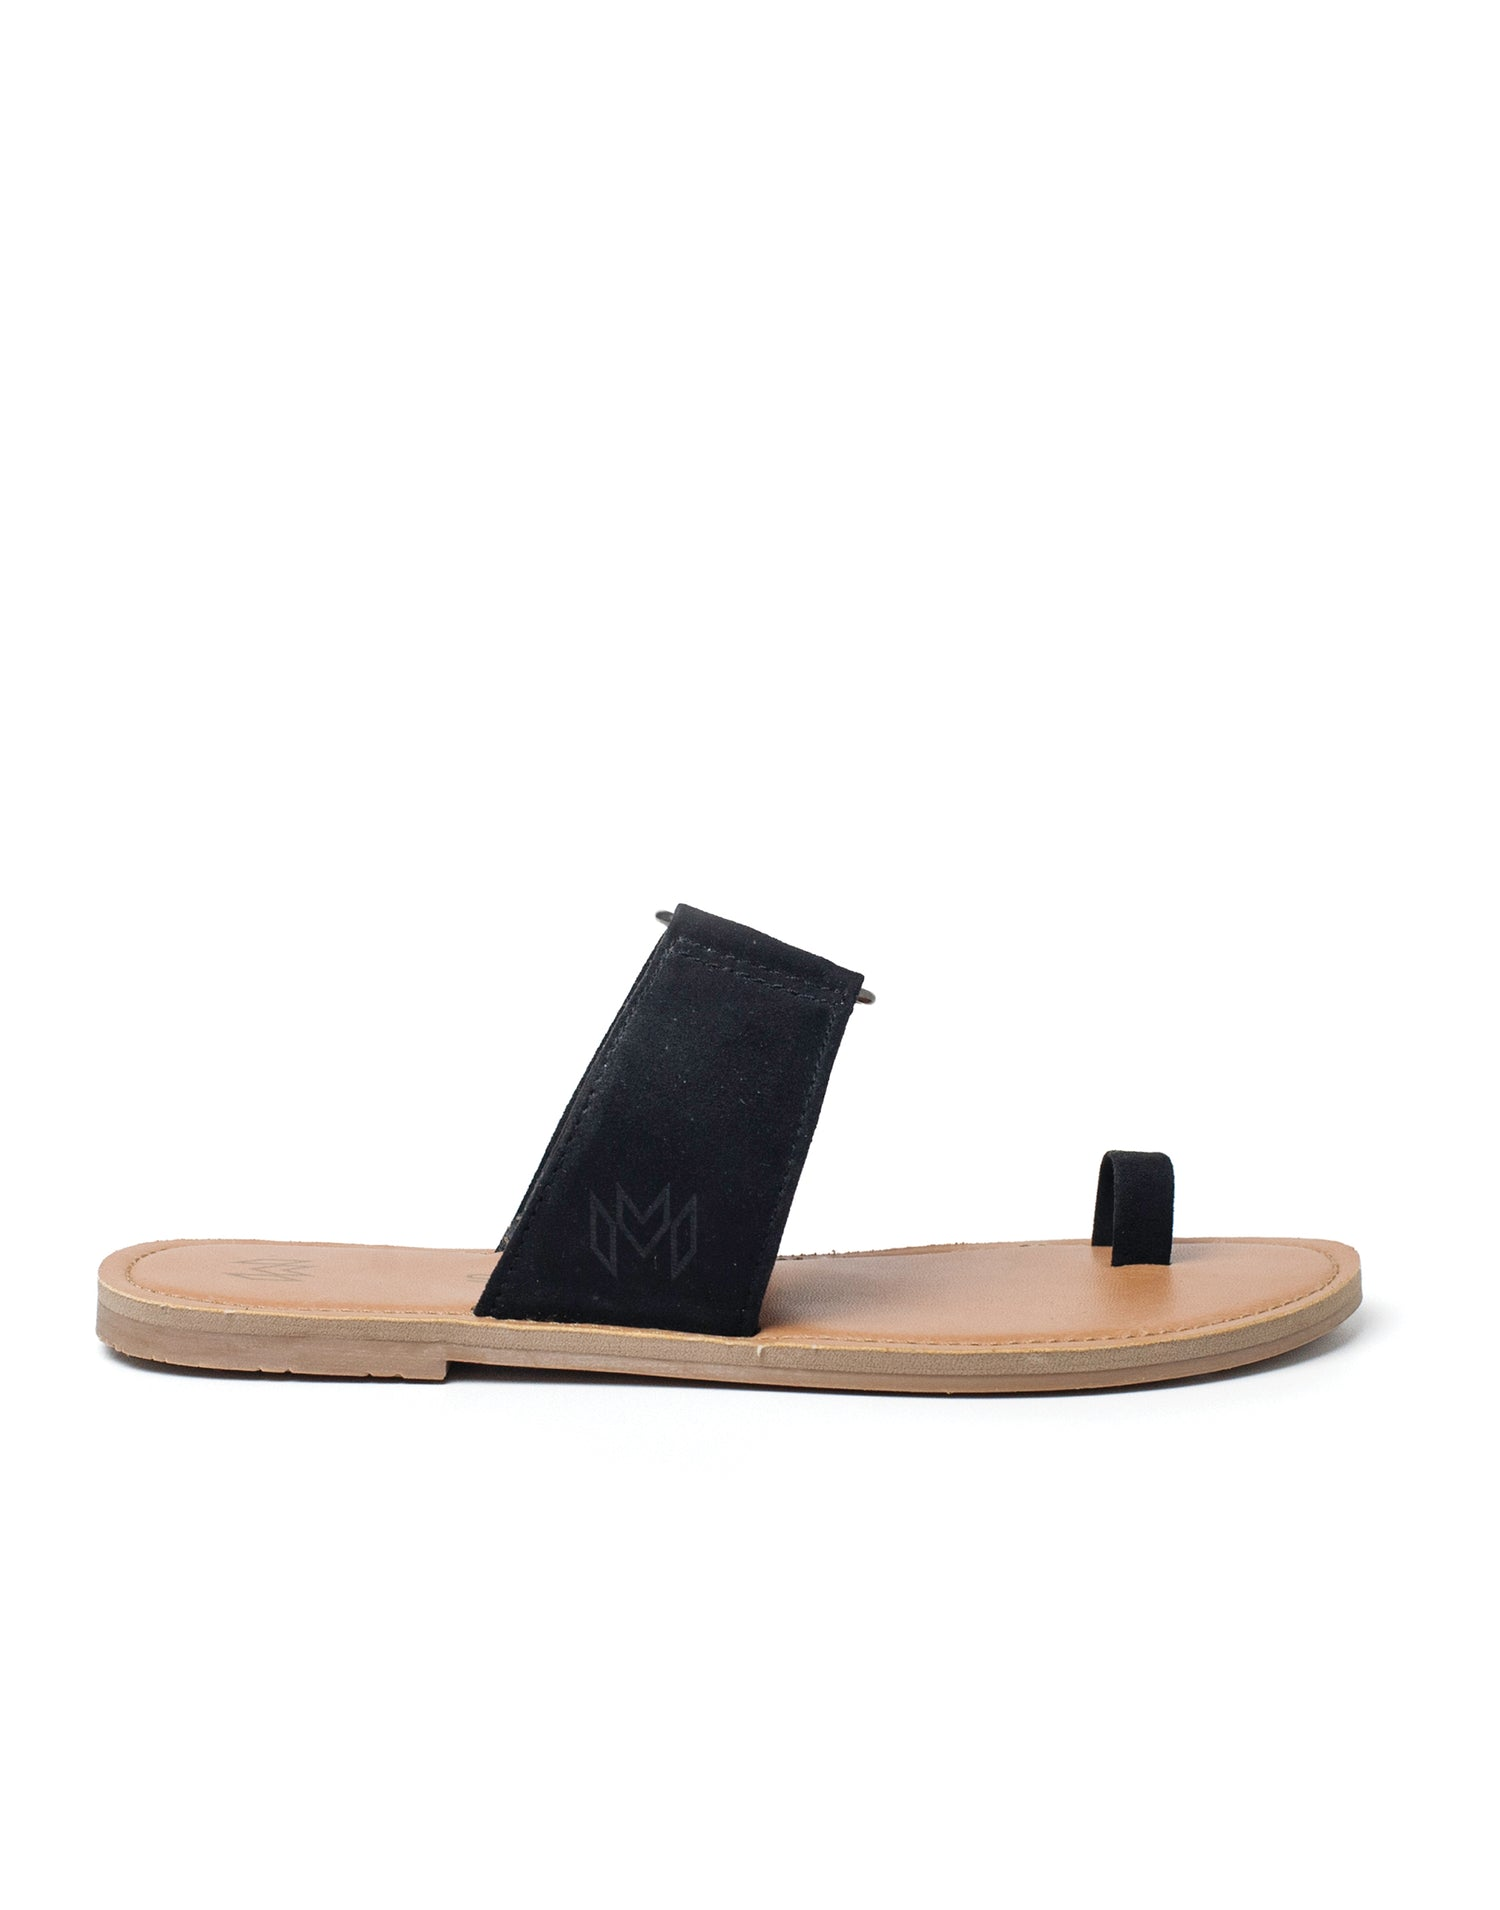 Malvados Icon Tori Sandal in Black - side view